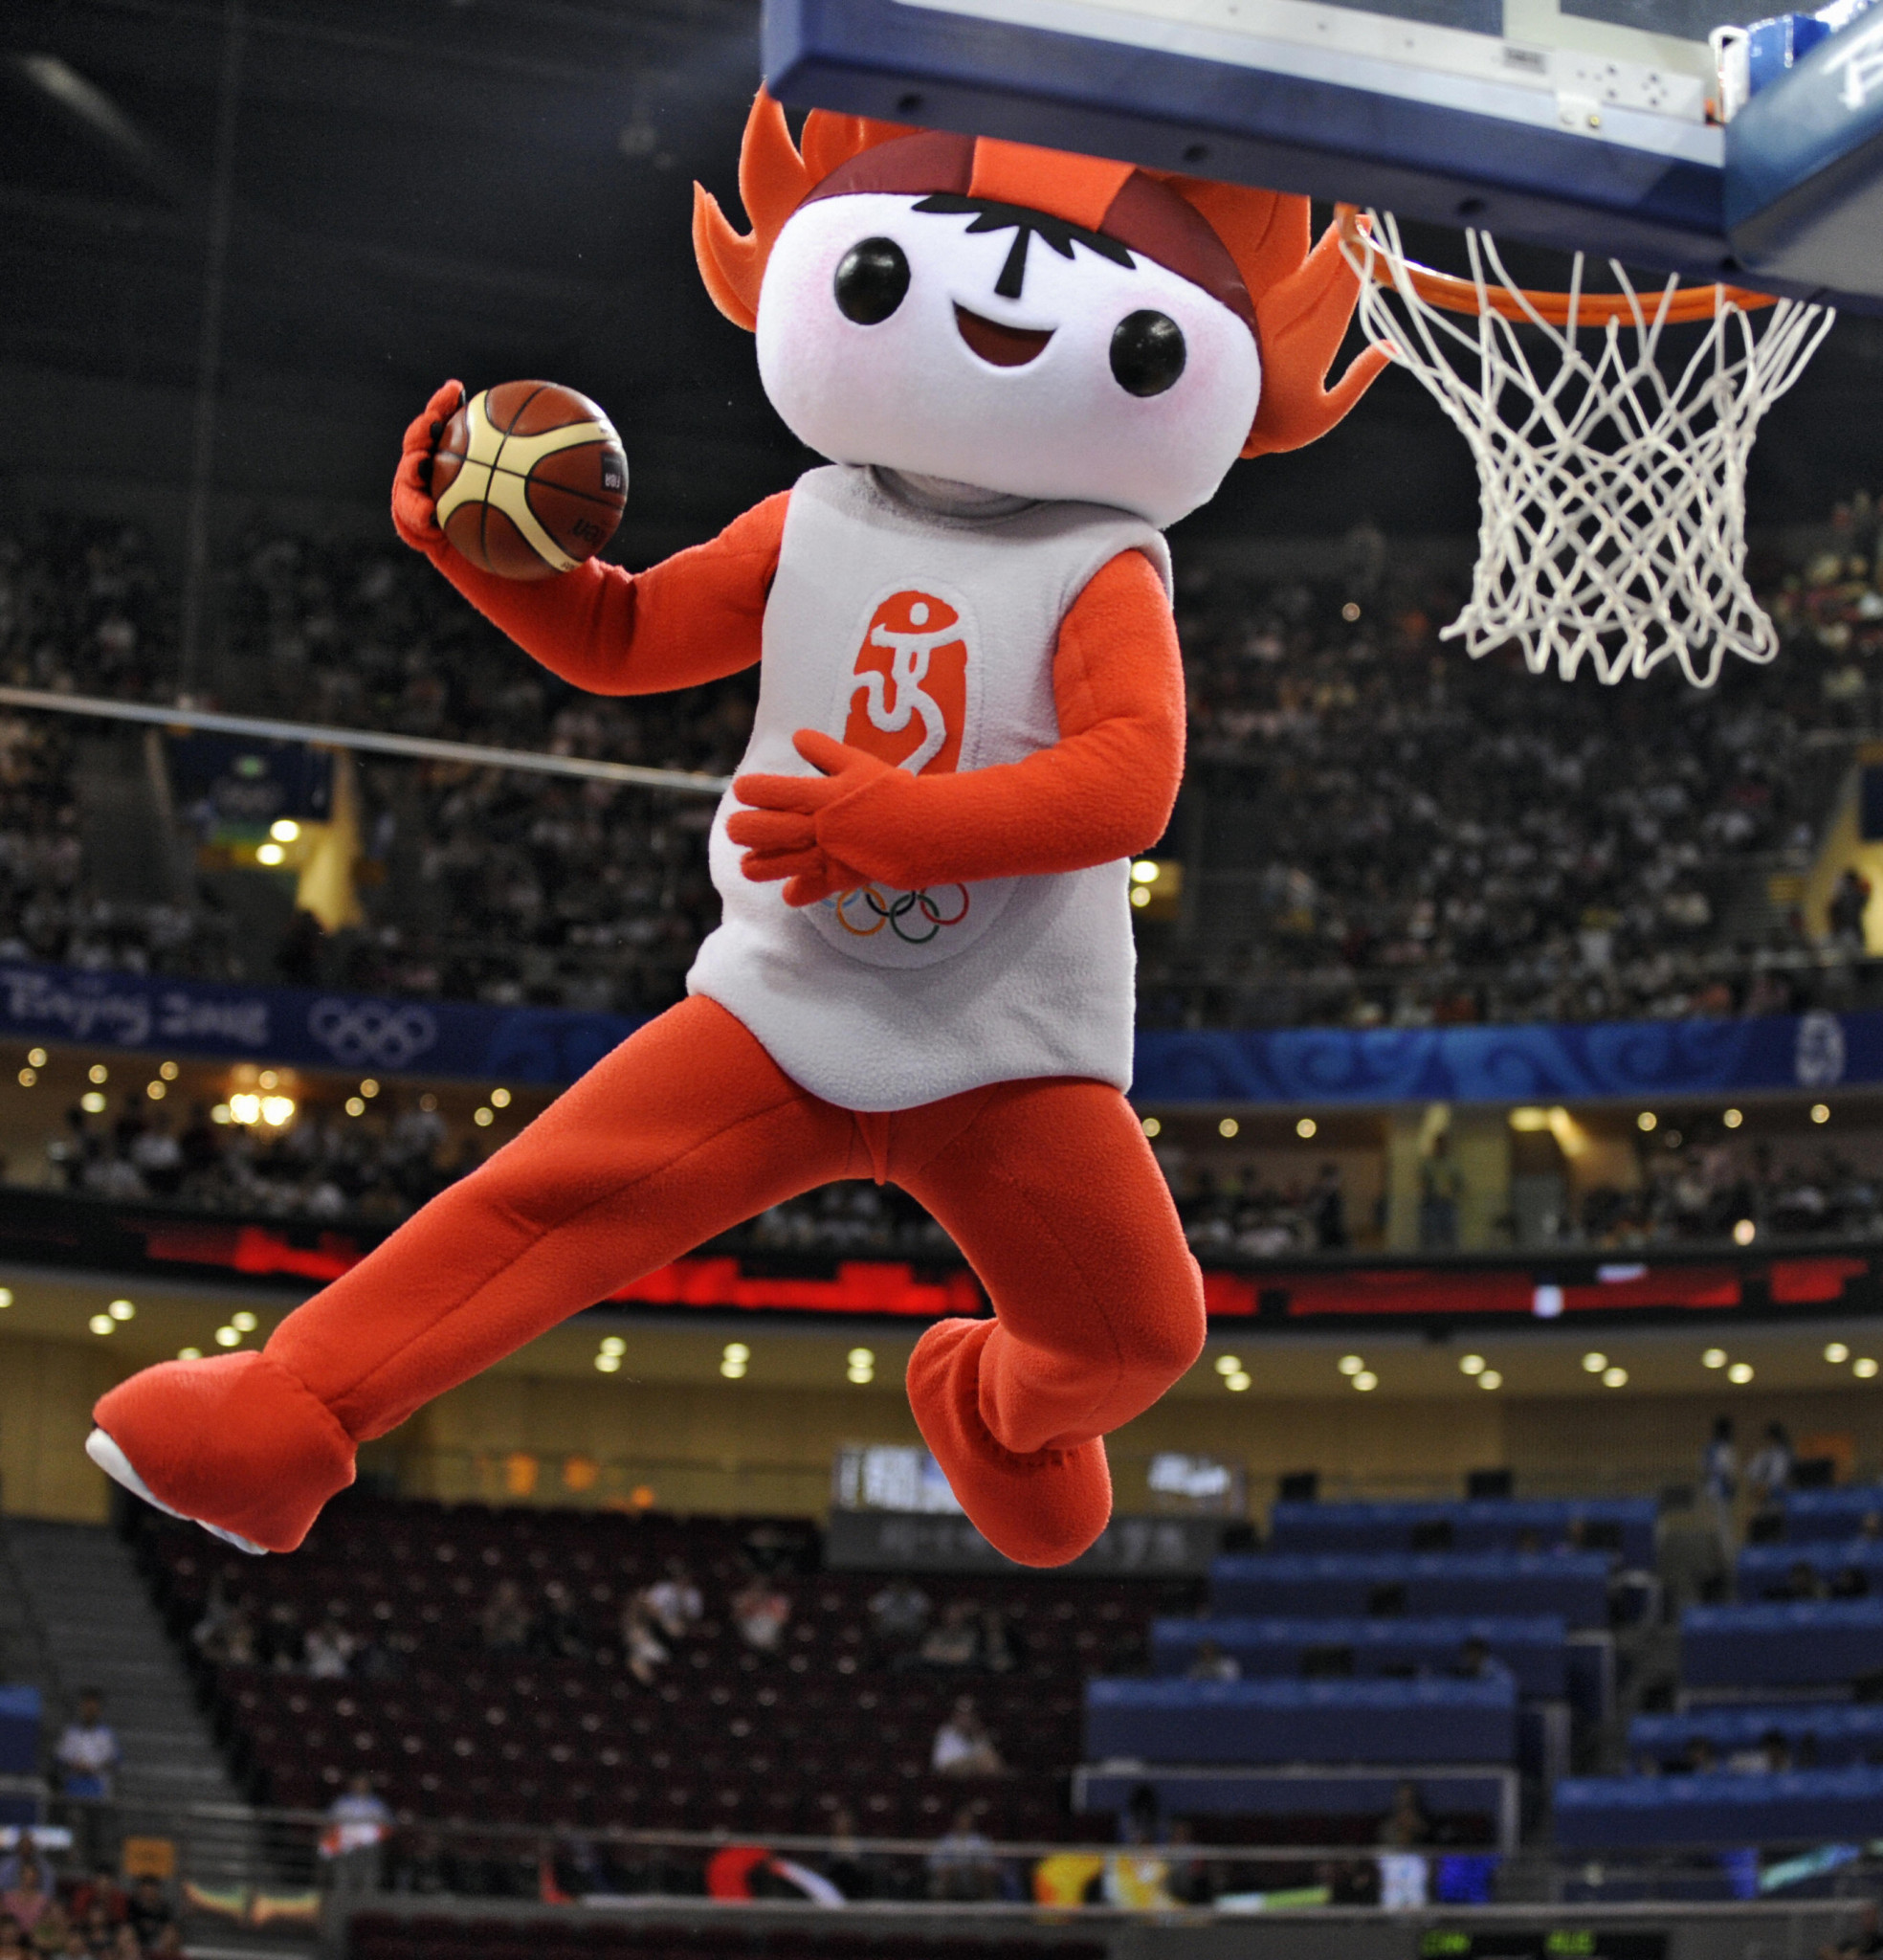 One of the Beijing 2008 mascots tries its hand at basketball ©Getty Images